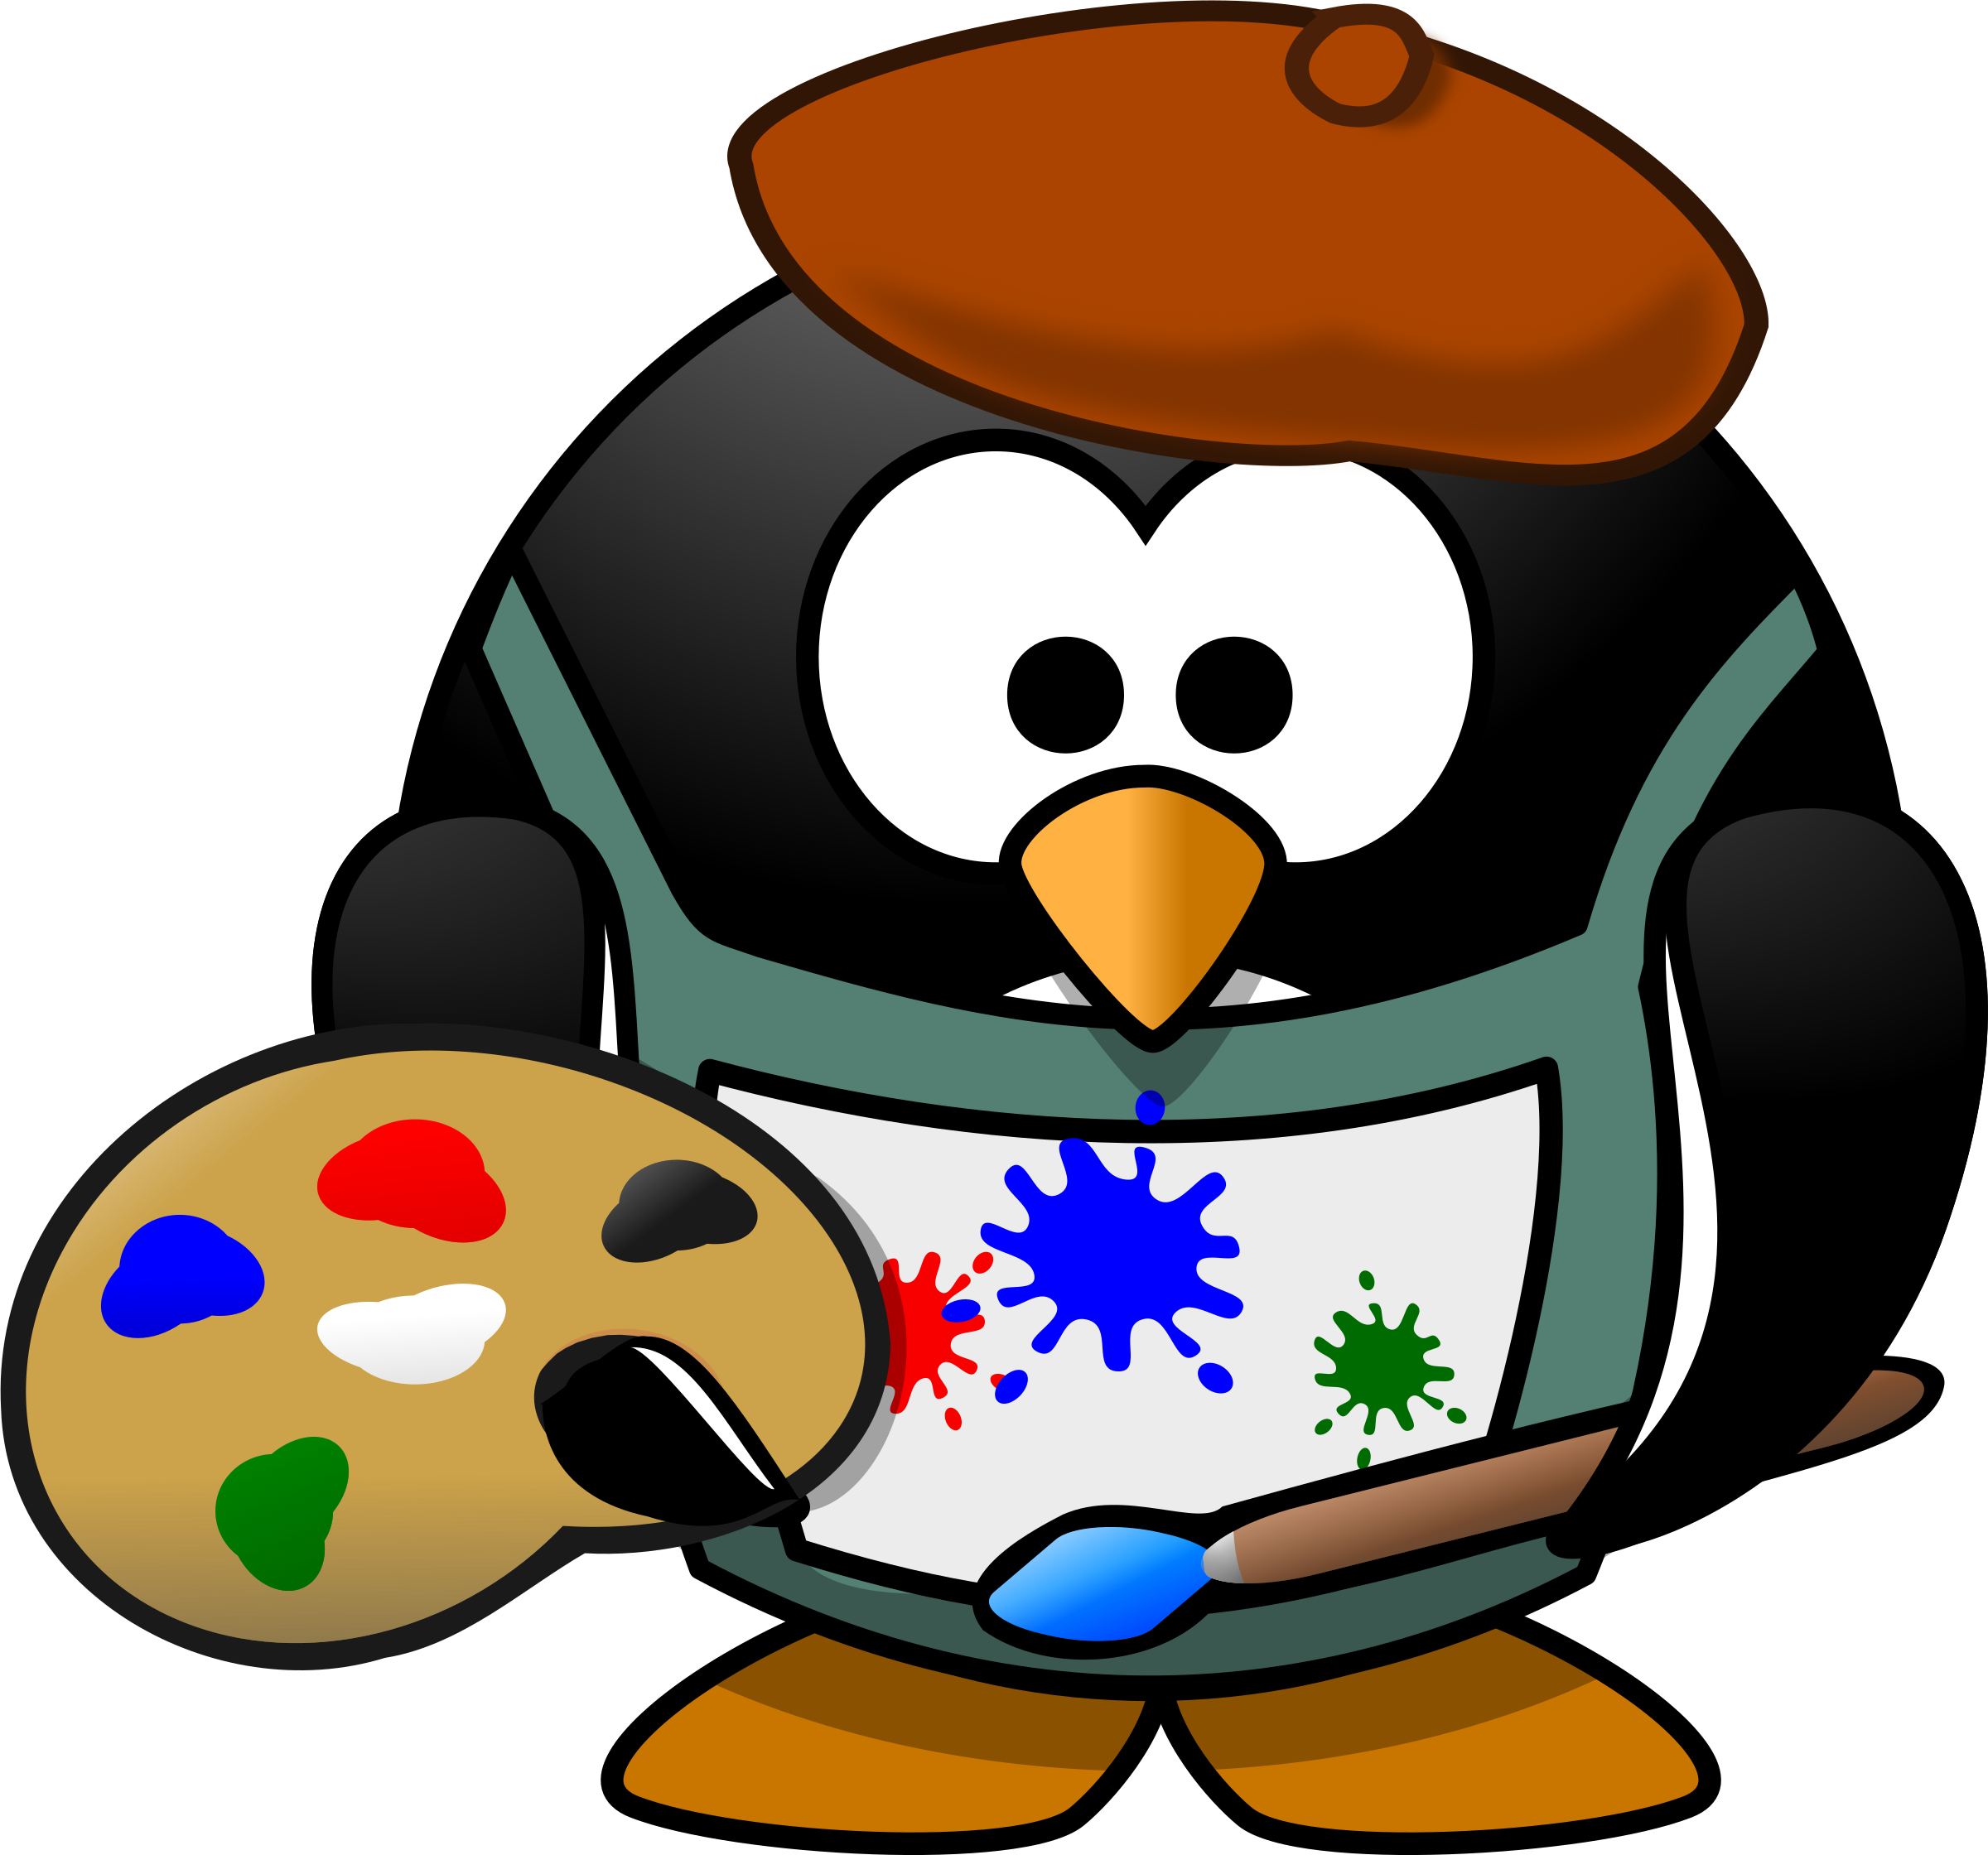 Penguin big image png. Painter clipart animal painting